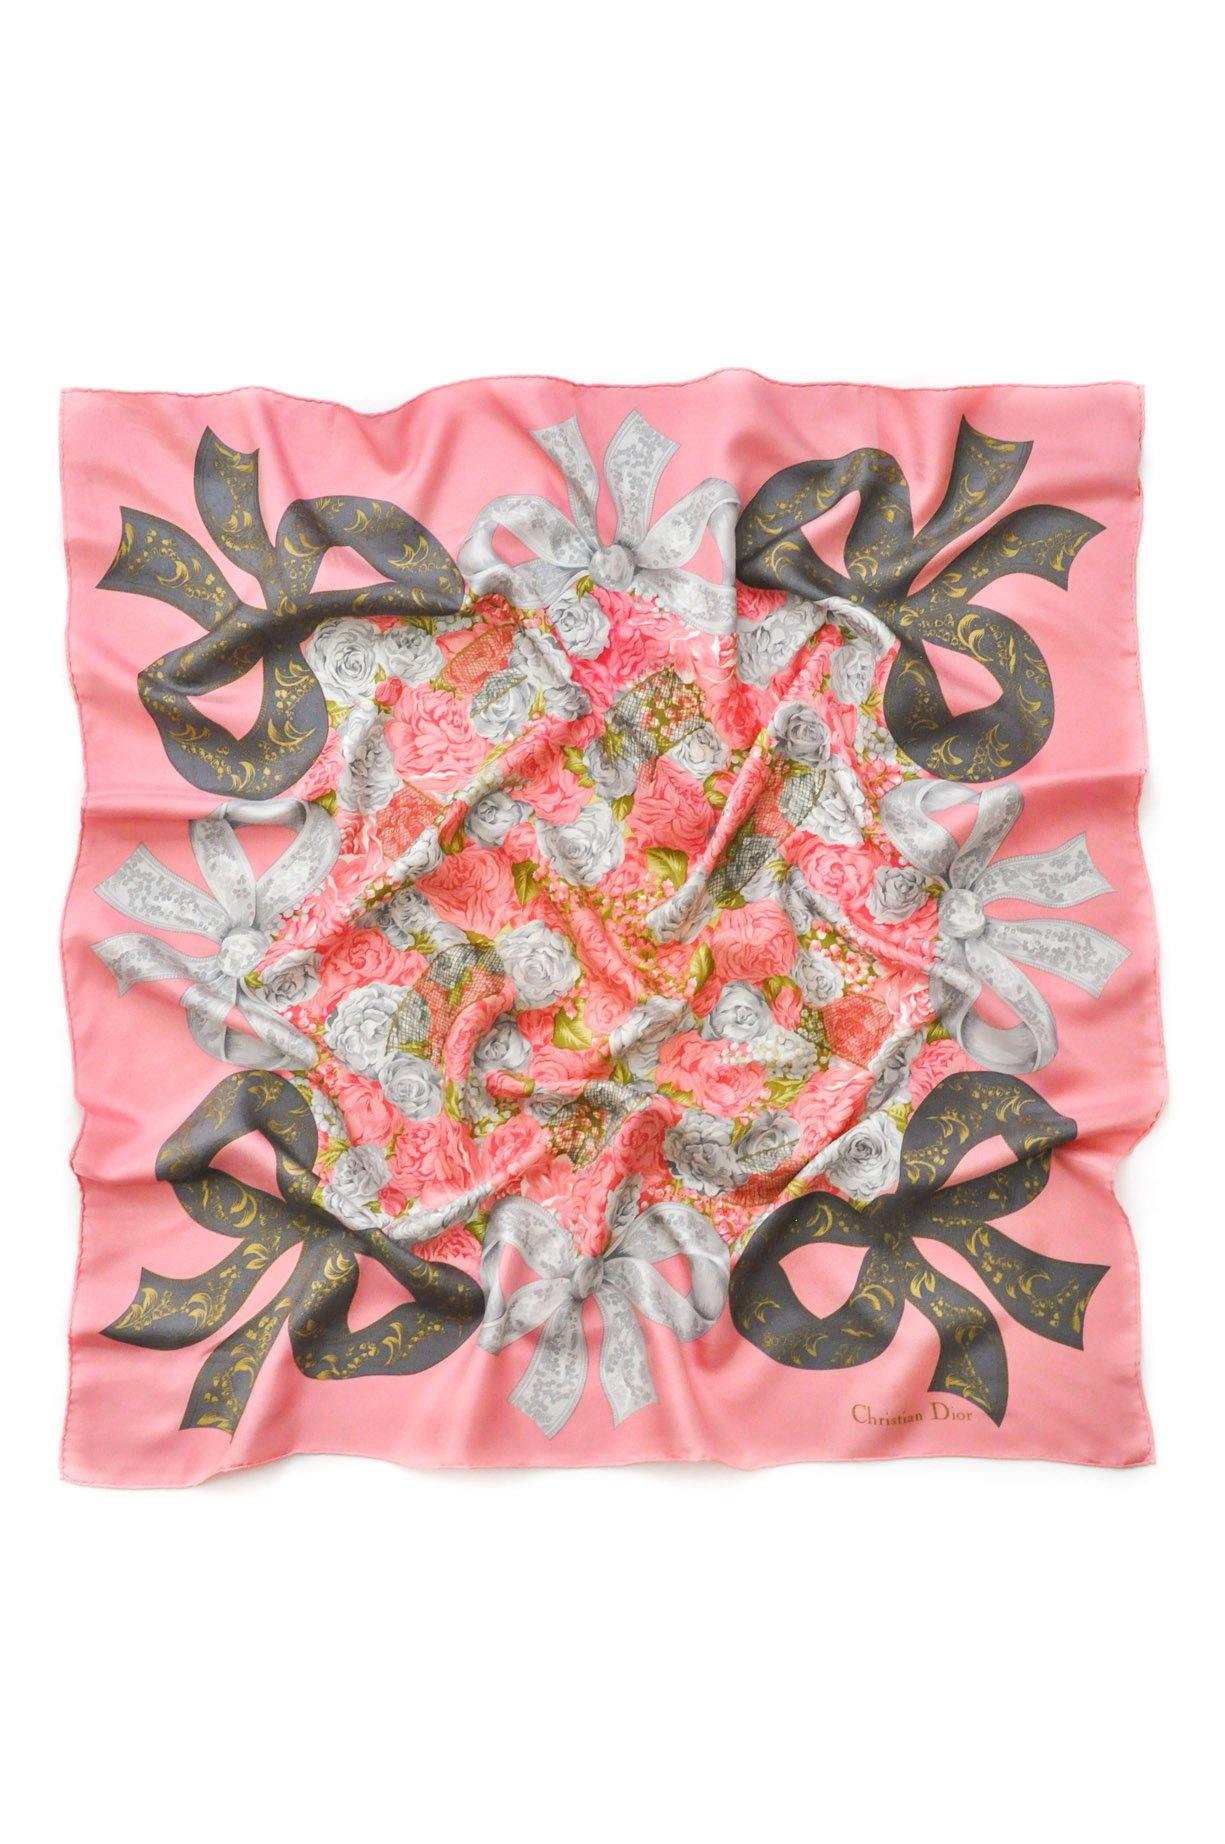 Vintage Christian Dior Lace Bow Scarf from Sweet & Spark.